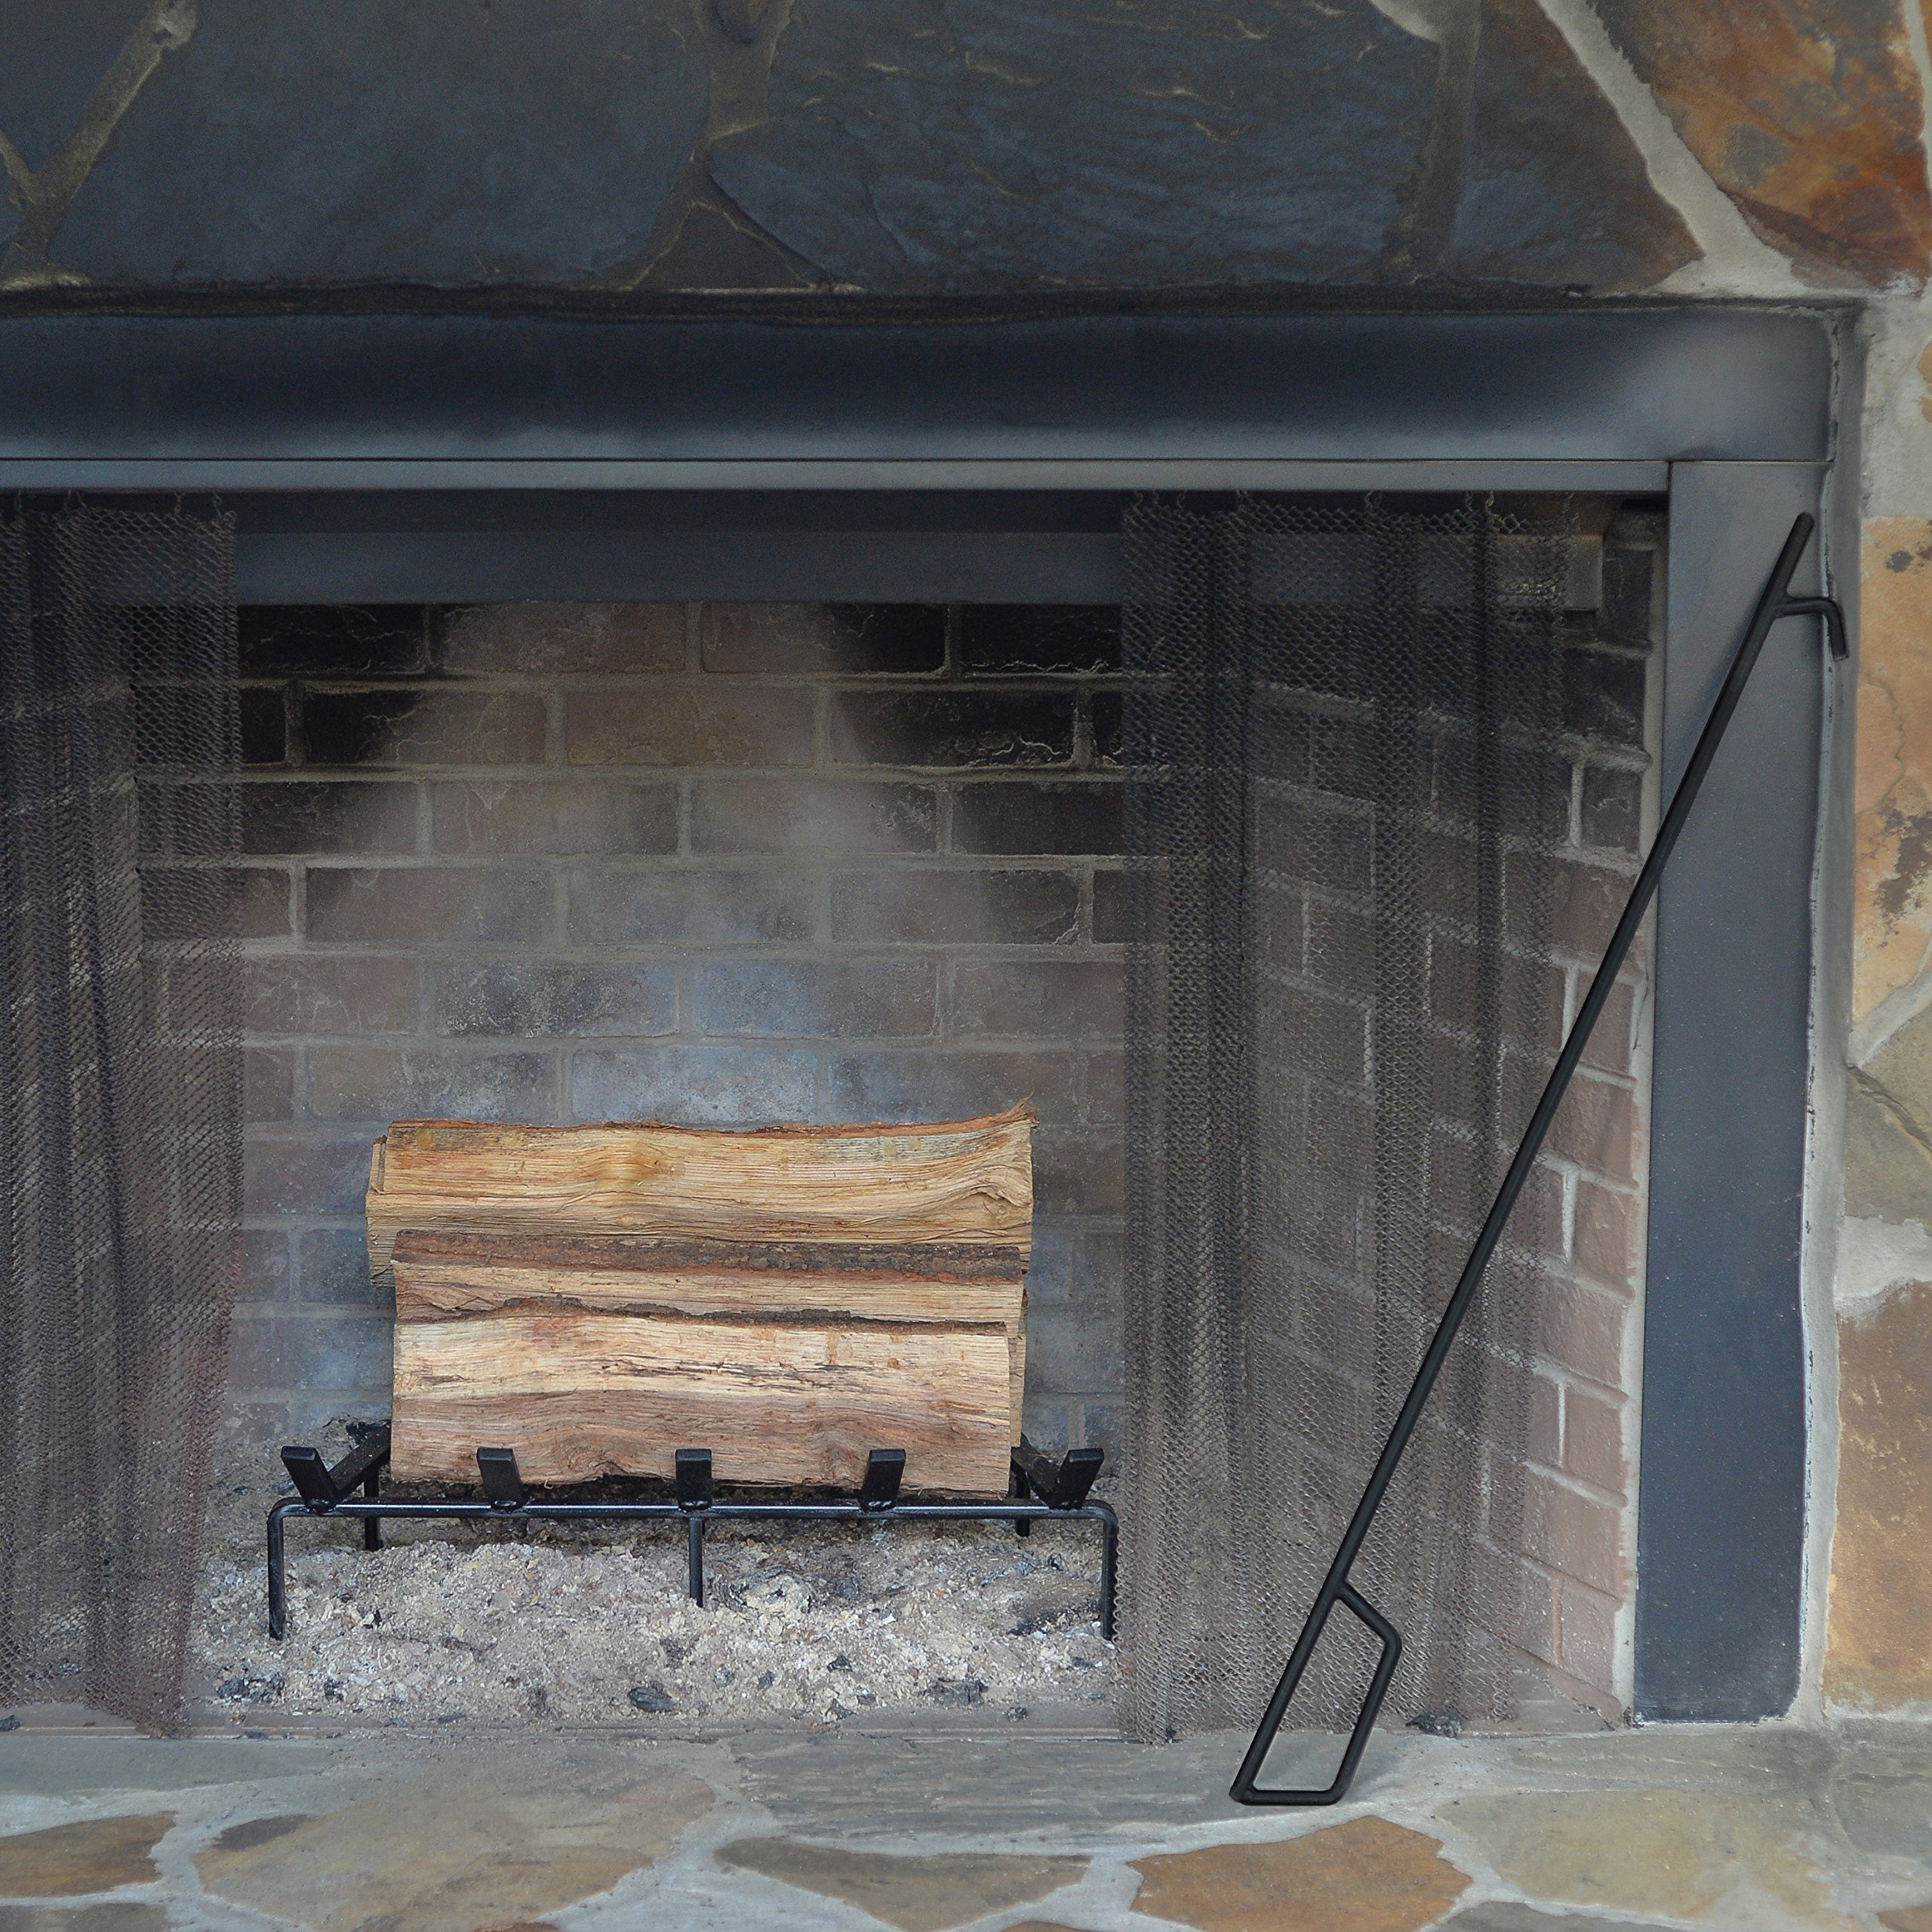 Heritage Products 24 Inch Heavy Duty Fire Poker - Made in the USA by Heritage Products (Image #3)